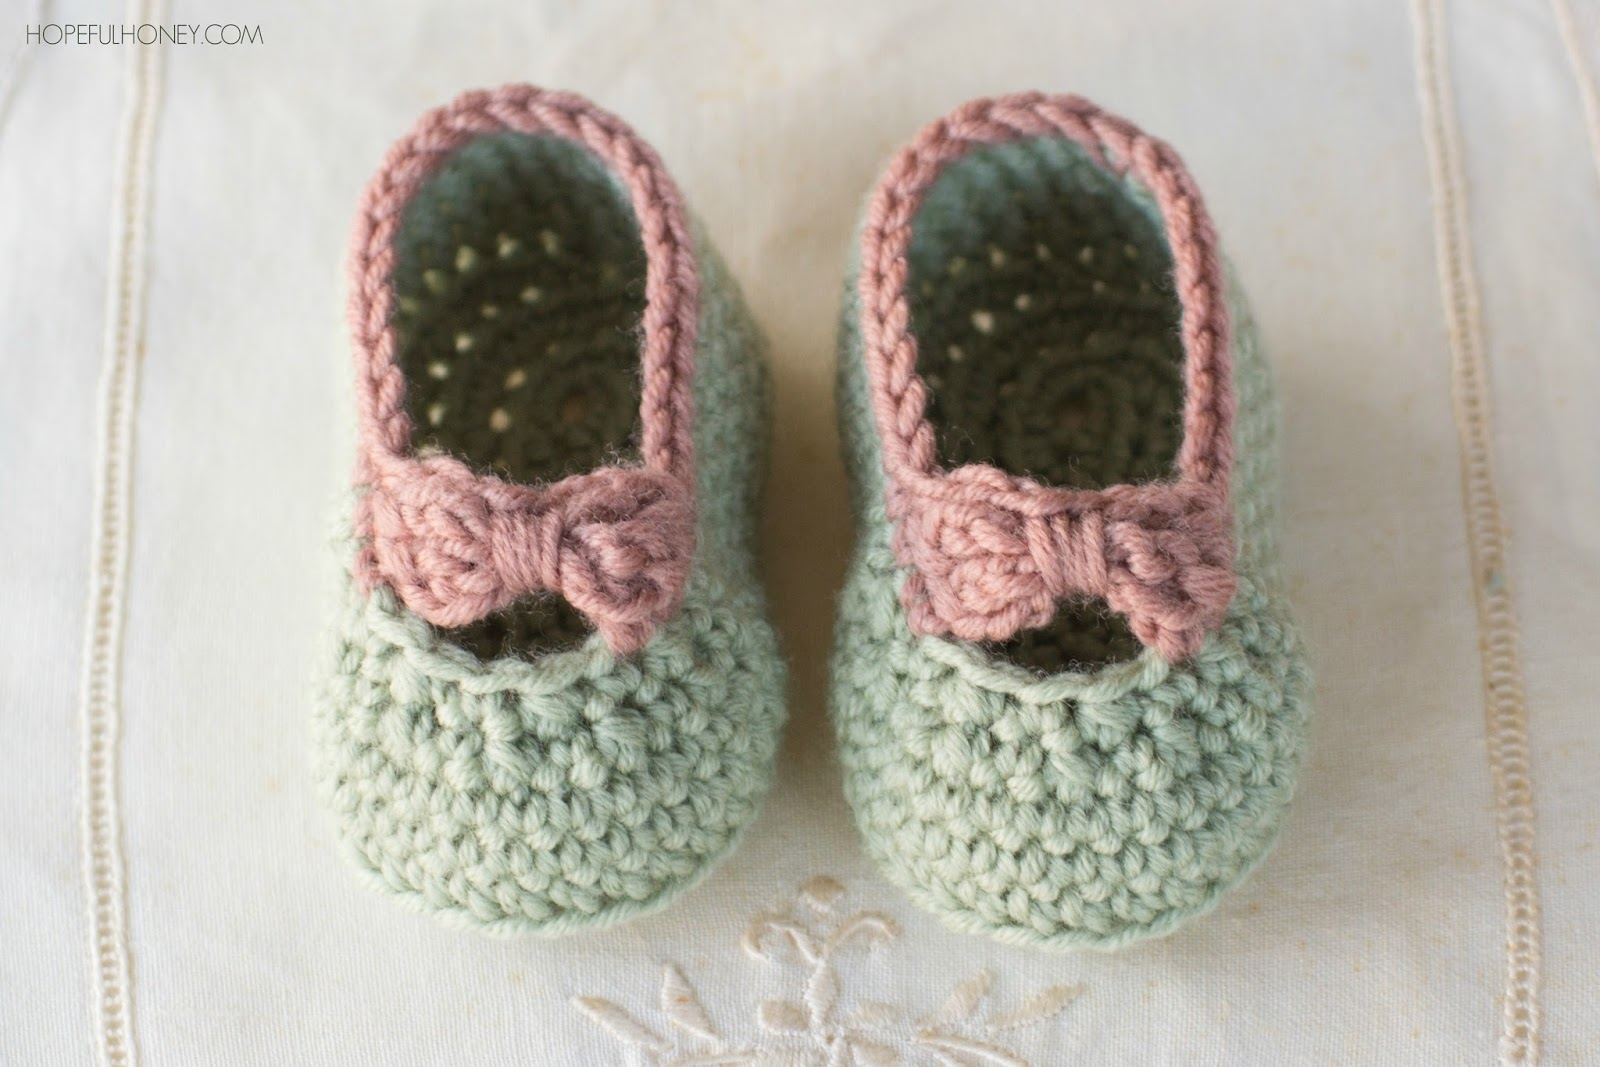 Knit Booties Pattern Free Crochet Booties Little Lady Ba Booties Free Crochet And